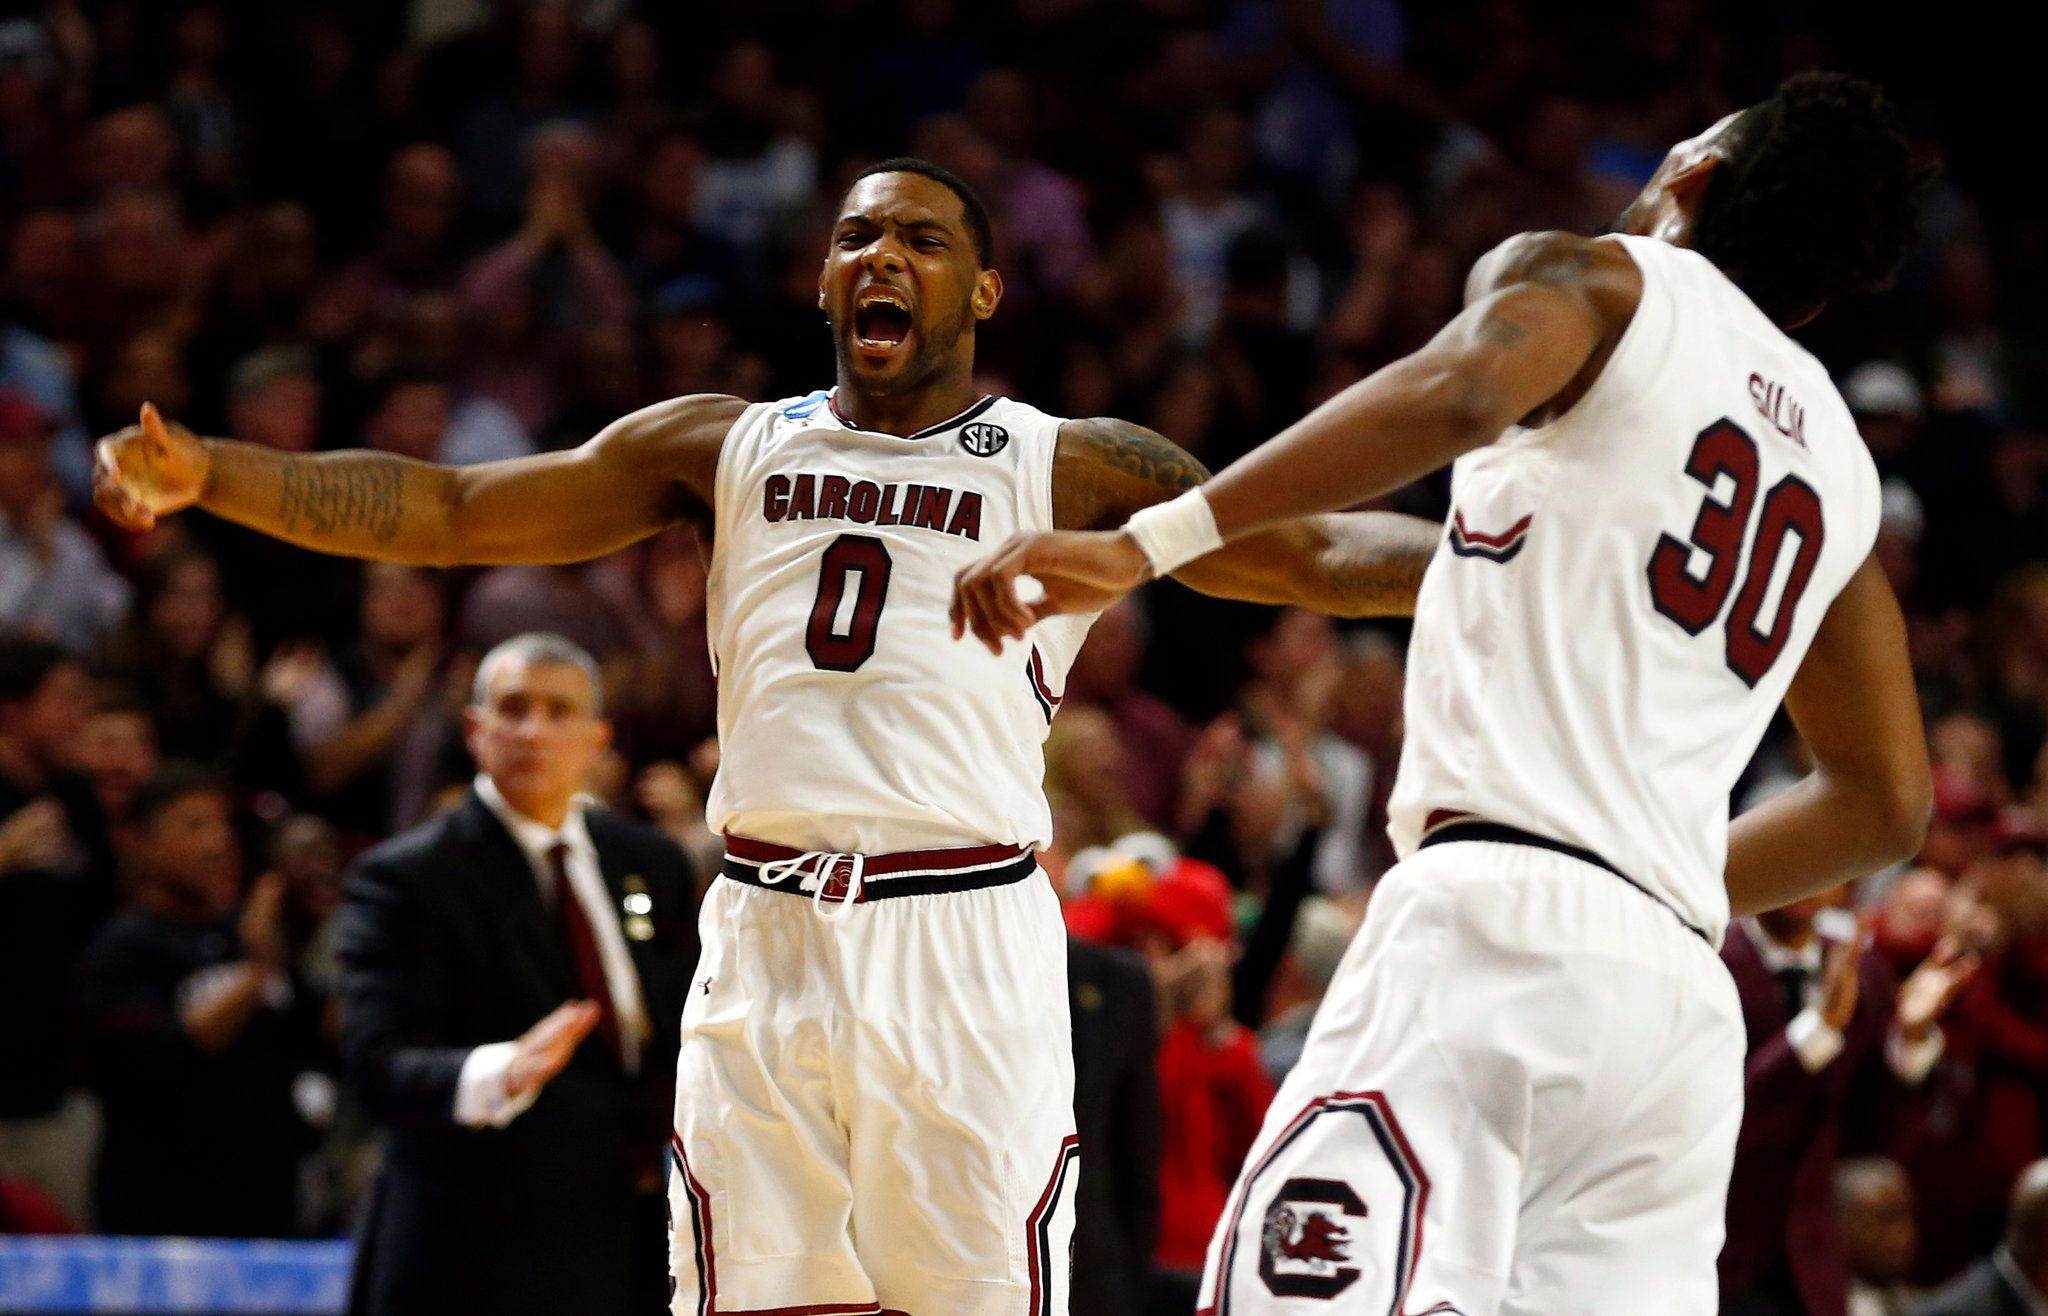 For south carolina a tournament win was a long time